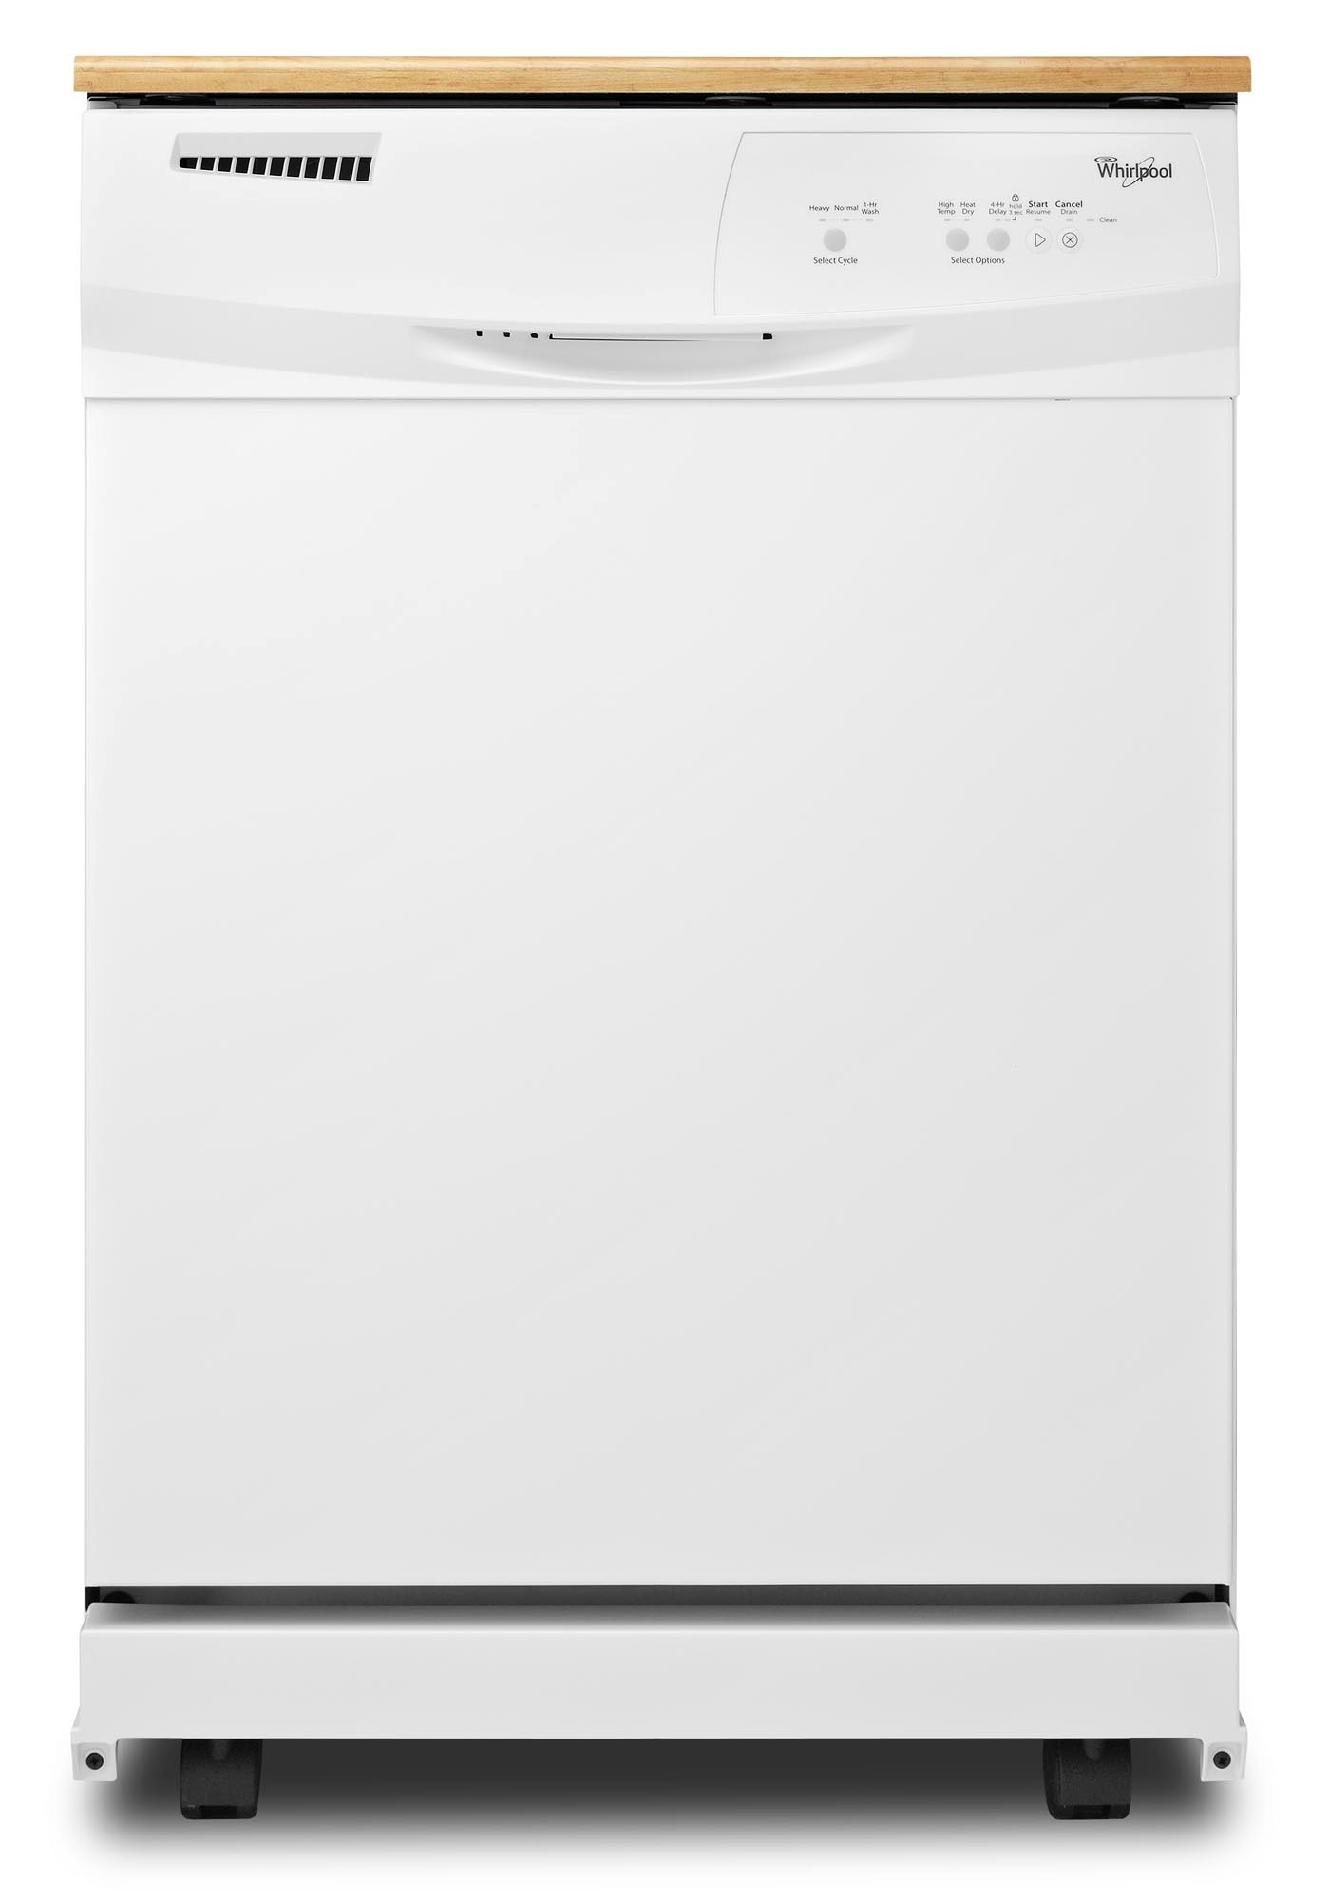 WHIRLPOOL� PORTABLE 24 IN. DISHWASHER WITH ELECTRONIC CONTROLS, WHITE, 3 CYCLES / 4 OPTIONS